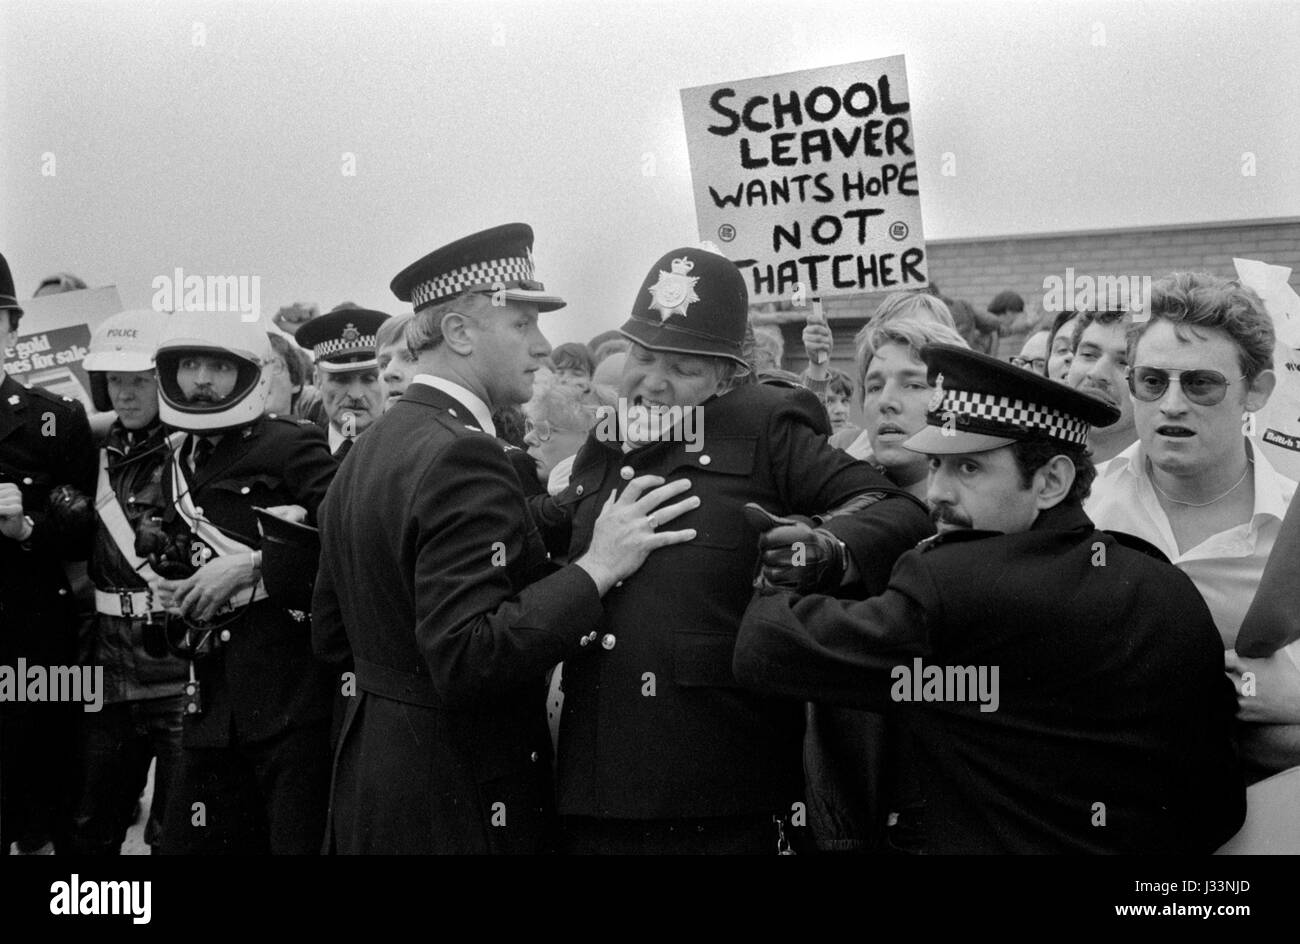 General Election 1983 Uk Thatcher unemployment demonstration about job prospects for school leavers 1980s `Thatchers - Stock Image